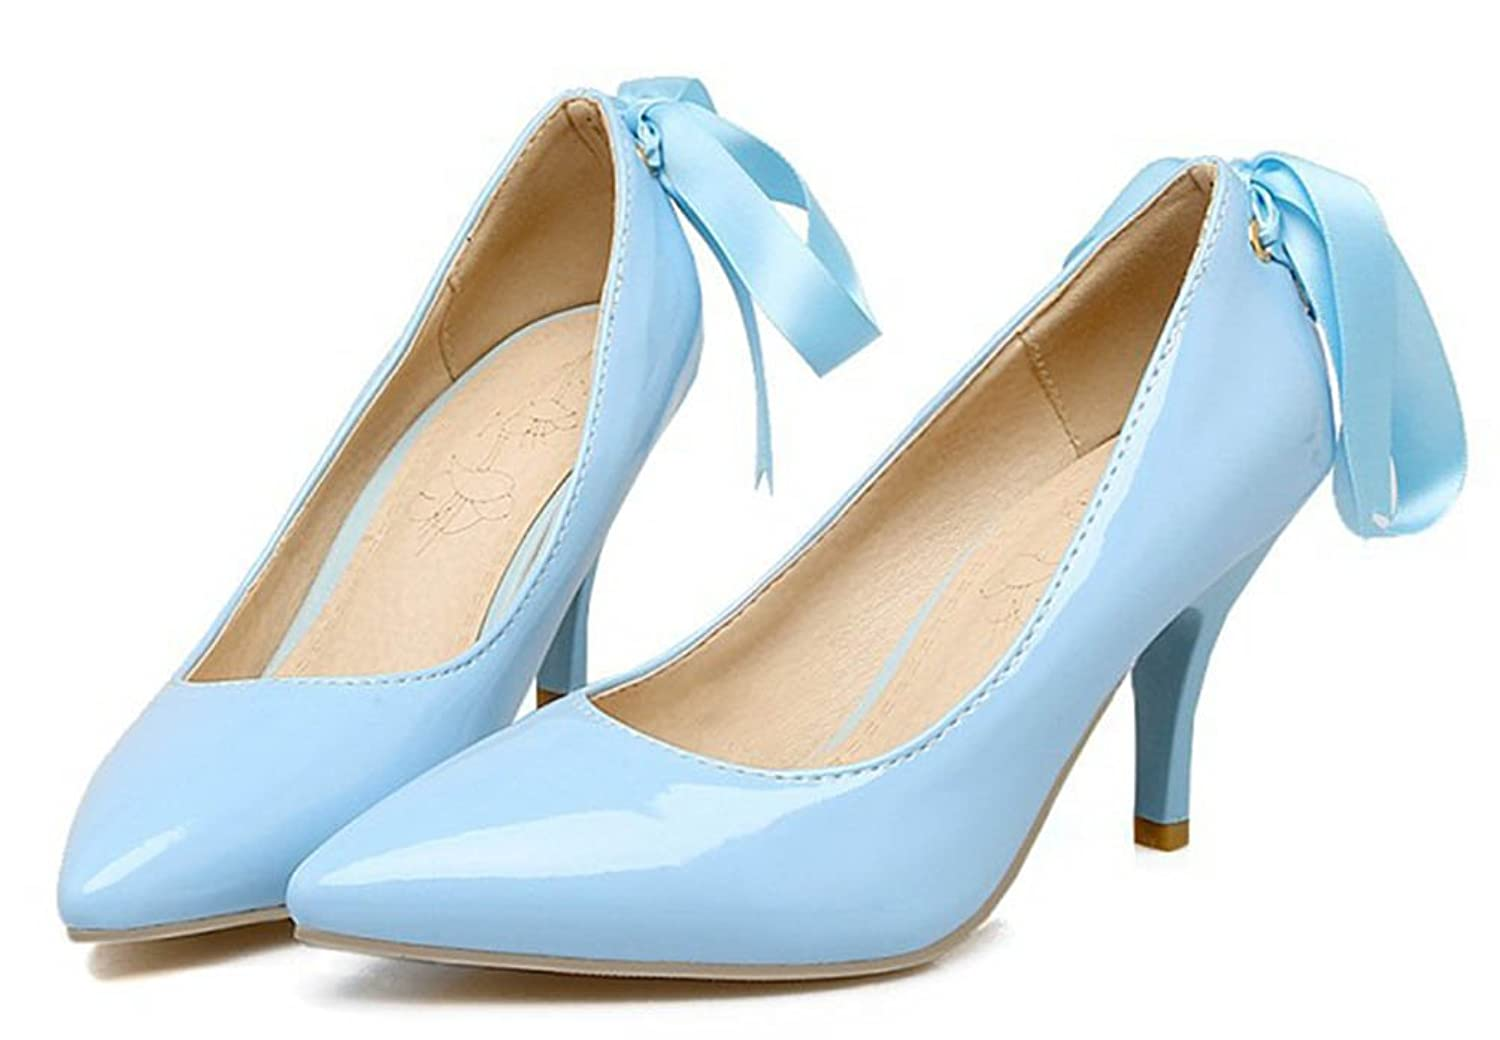 SHOWHOW Damen Lack Kunstleder Spitz Stiletto Pumps Blau 37 EU